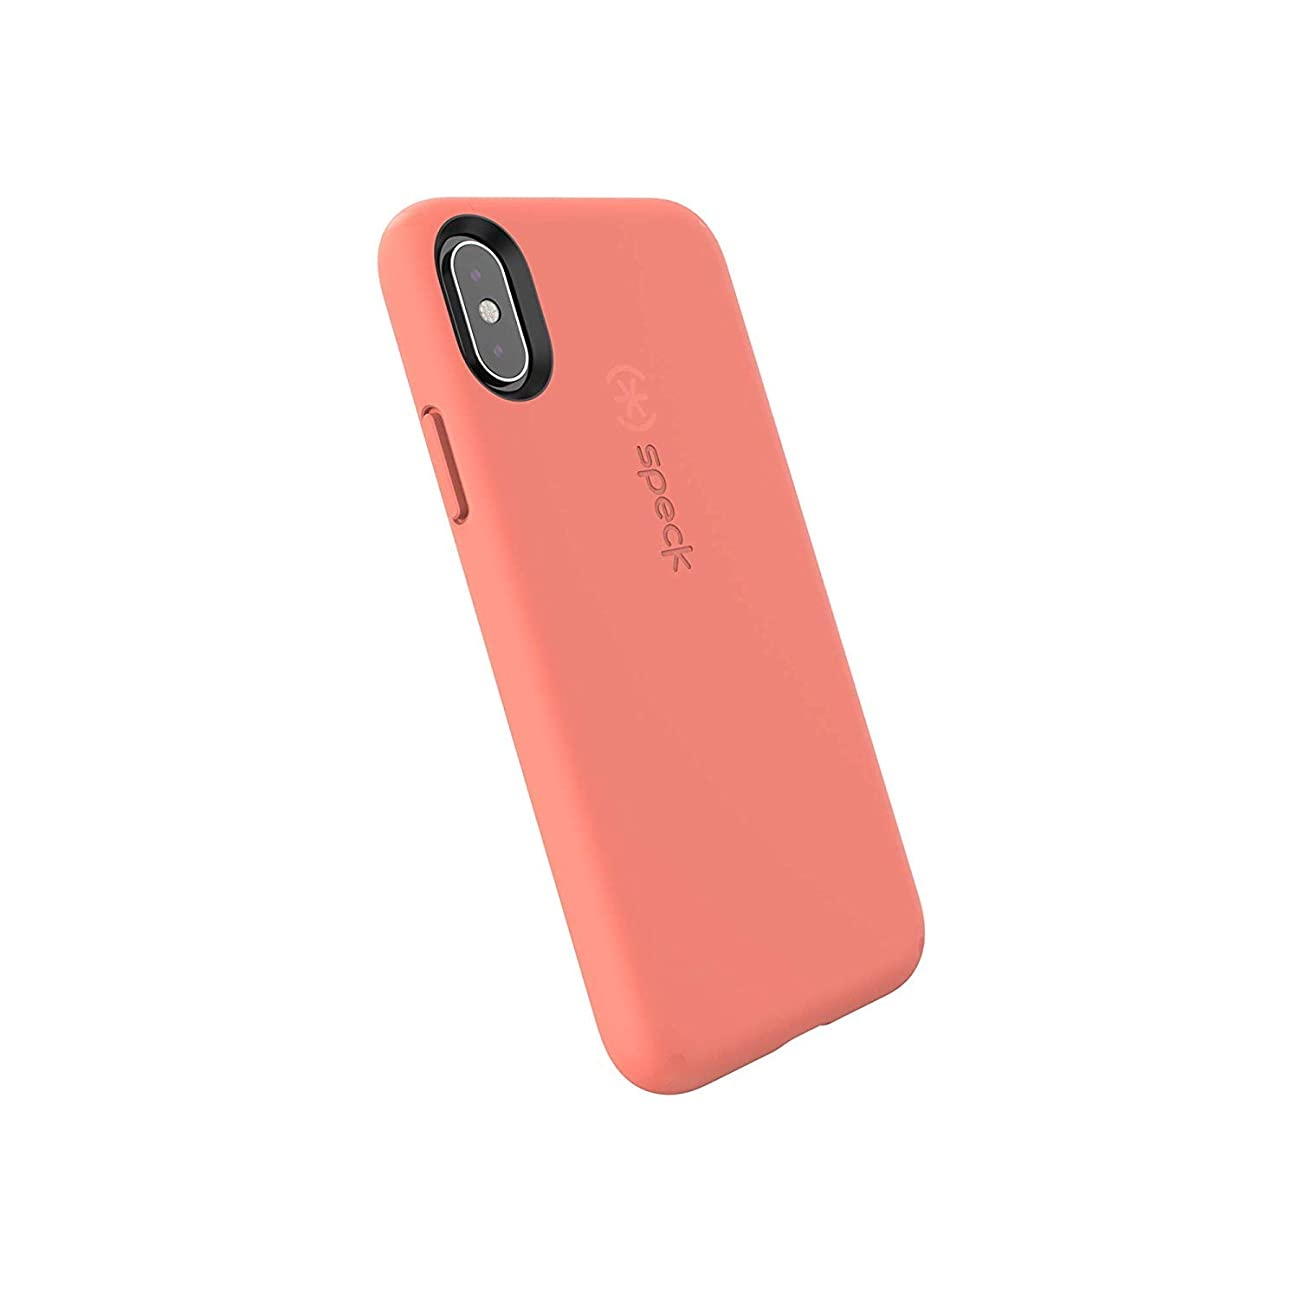 Speck Products CandyShell Fit iPhone Xs/iPhone X Case, Apricot Peach/Apricot Peach